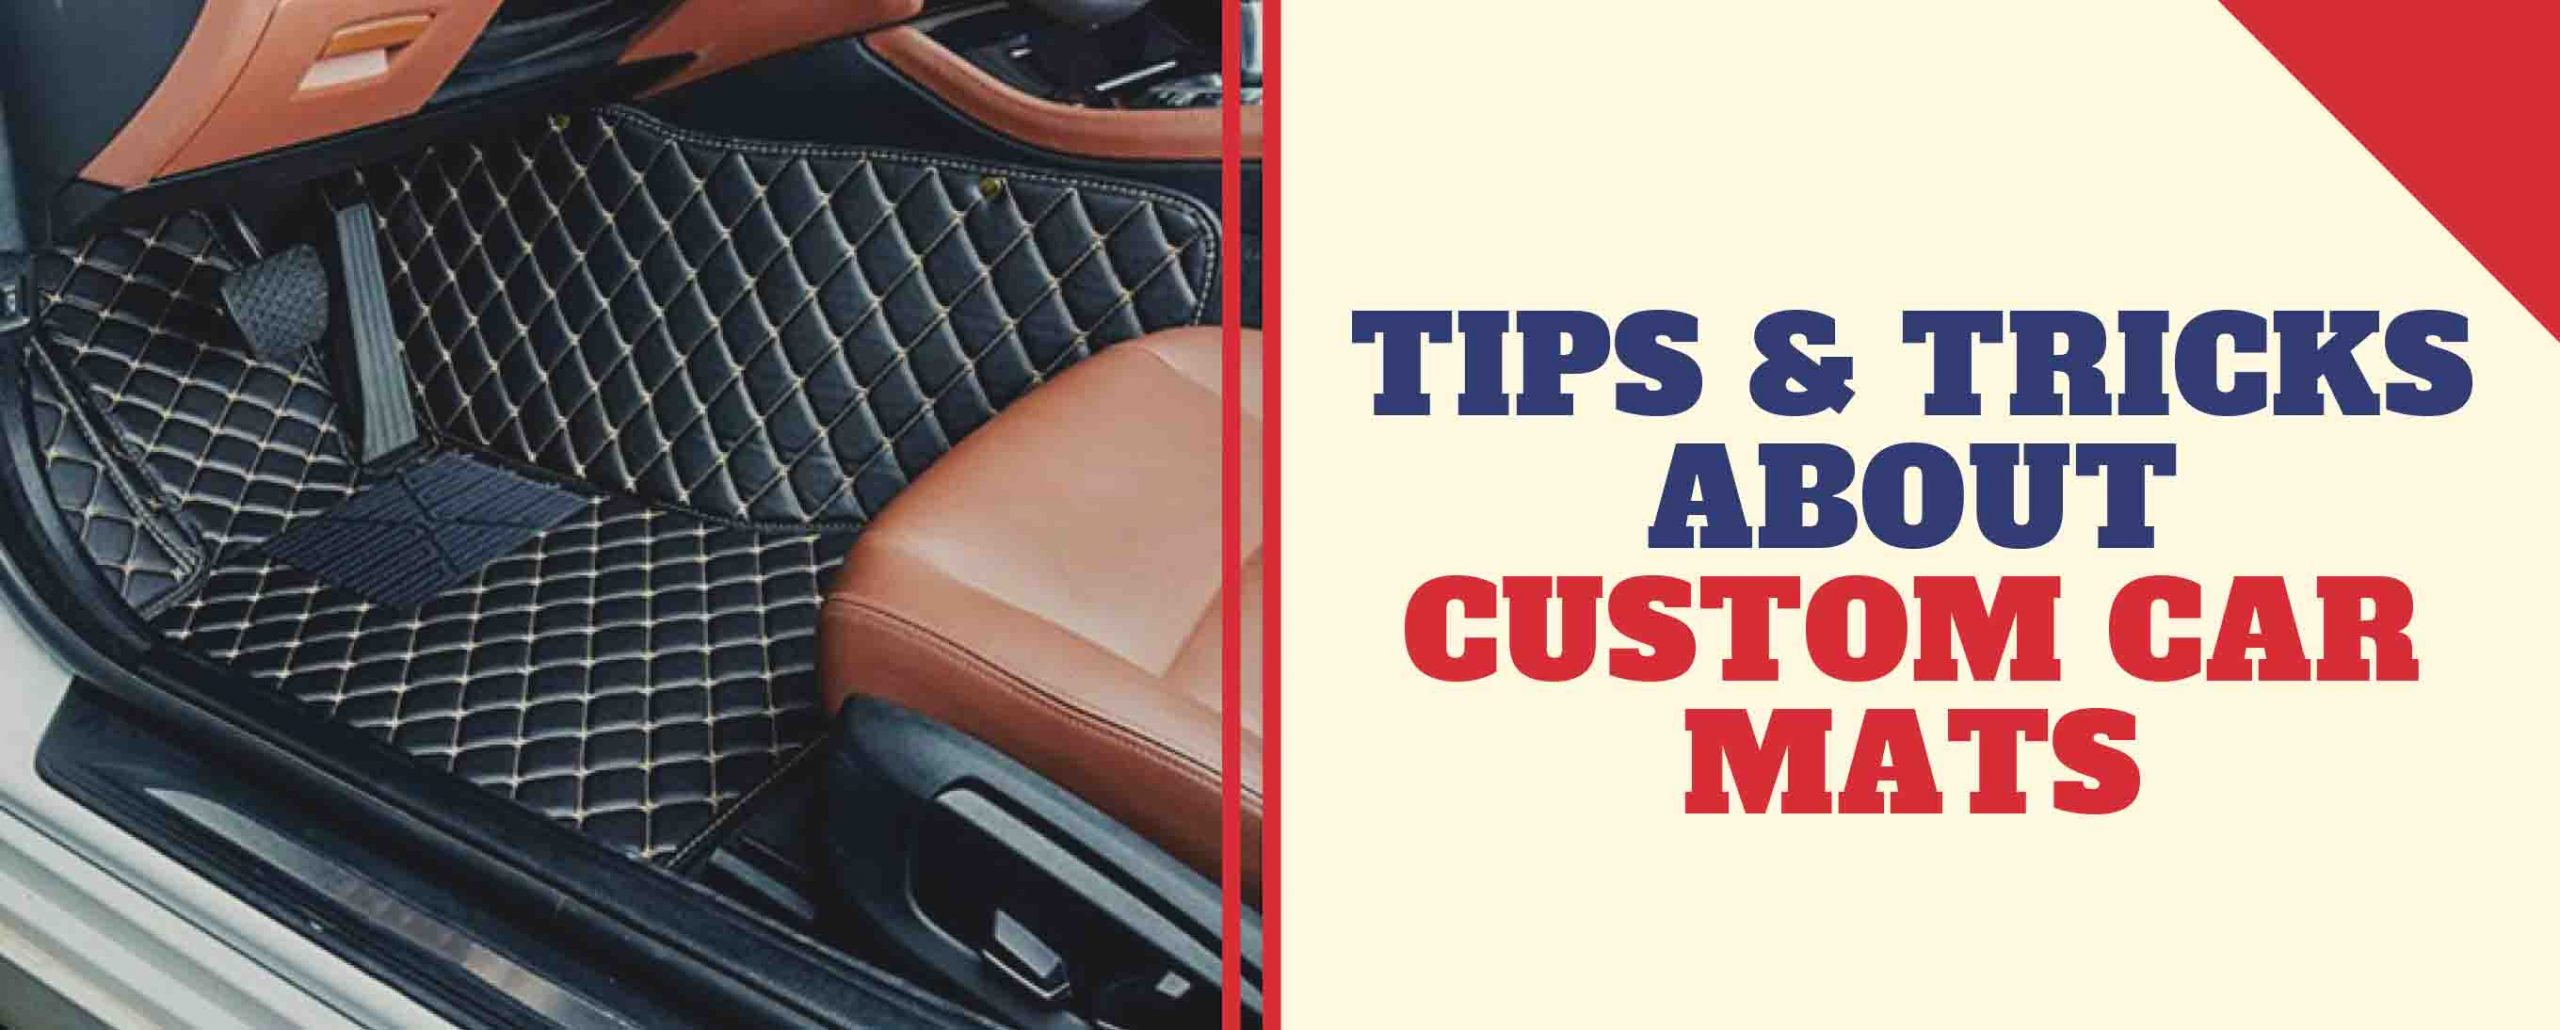 Tips and tricks about custom car mats - MudSmart